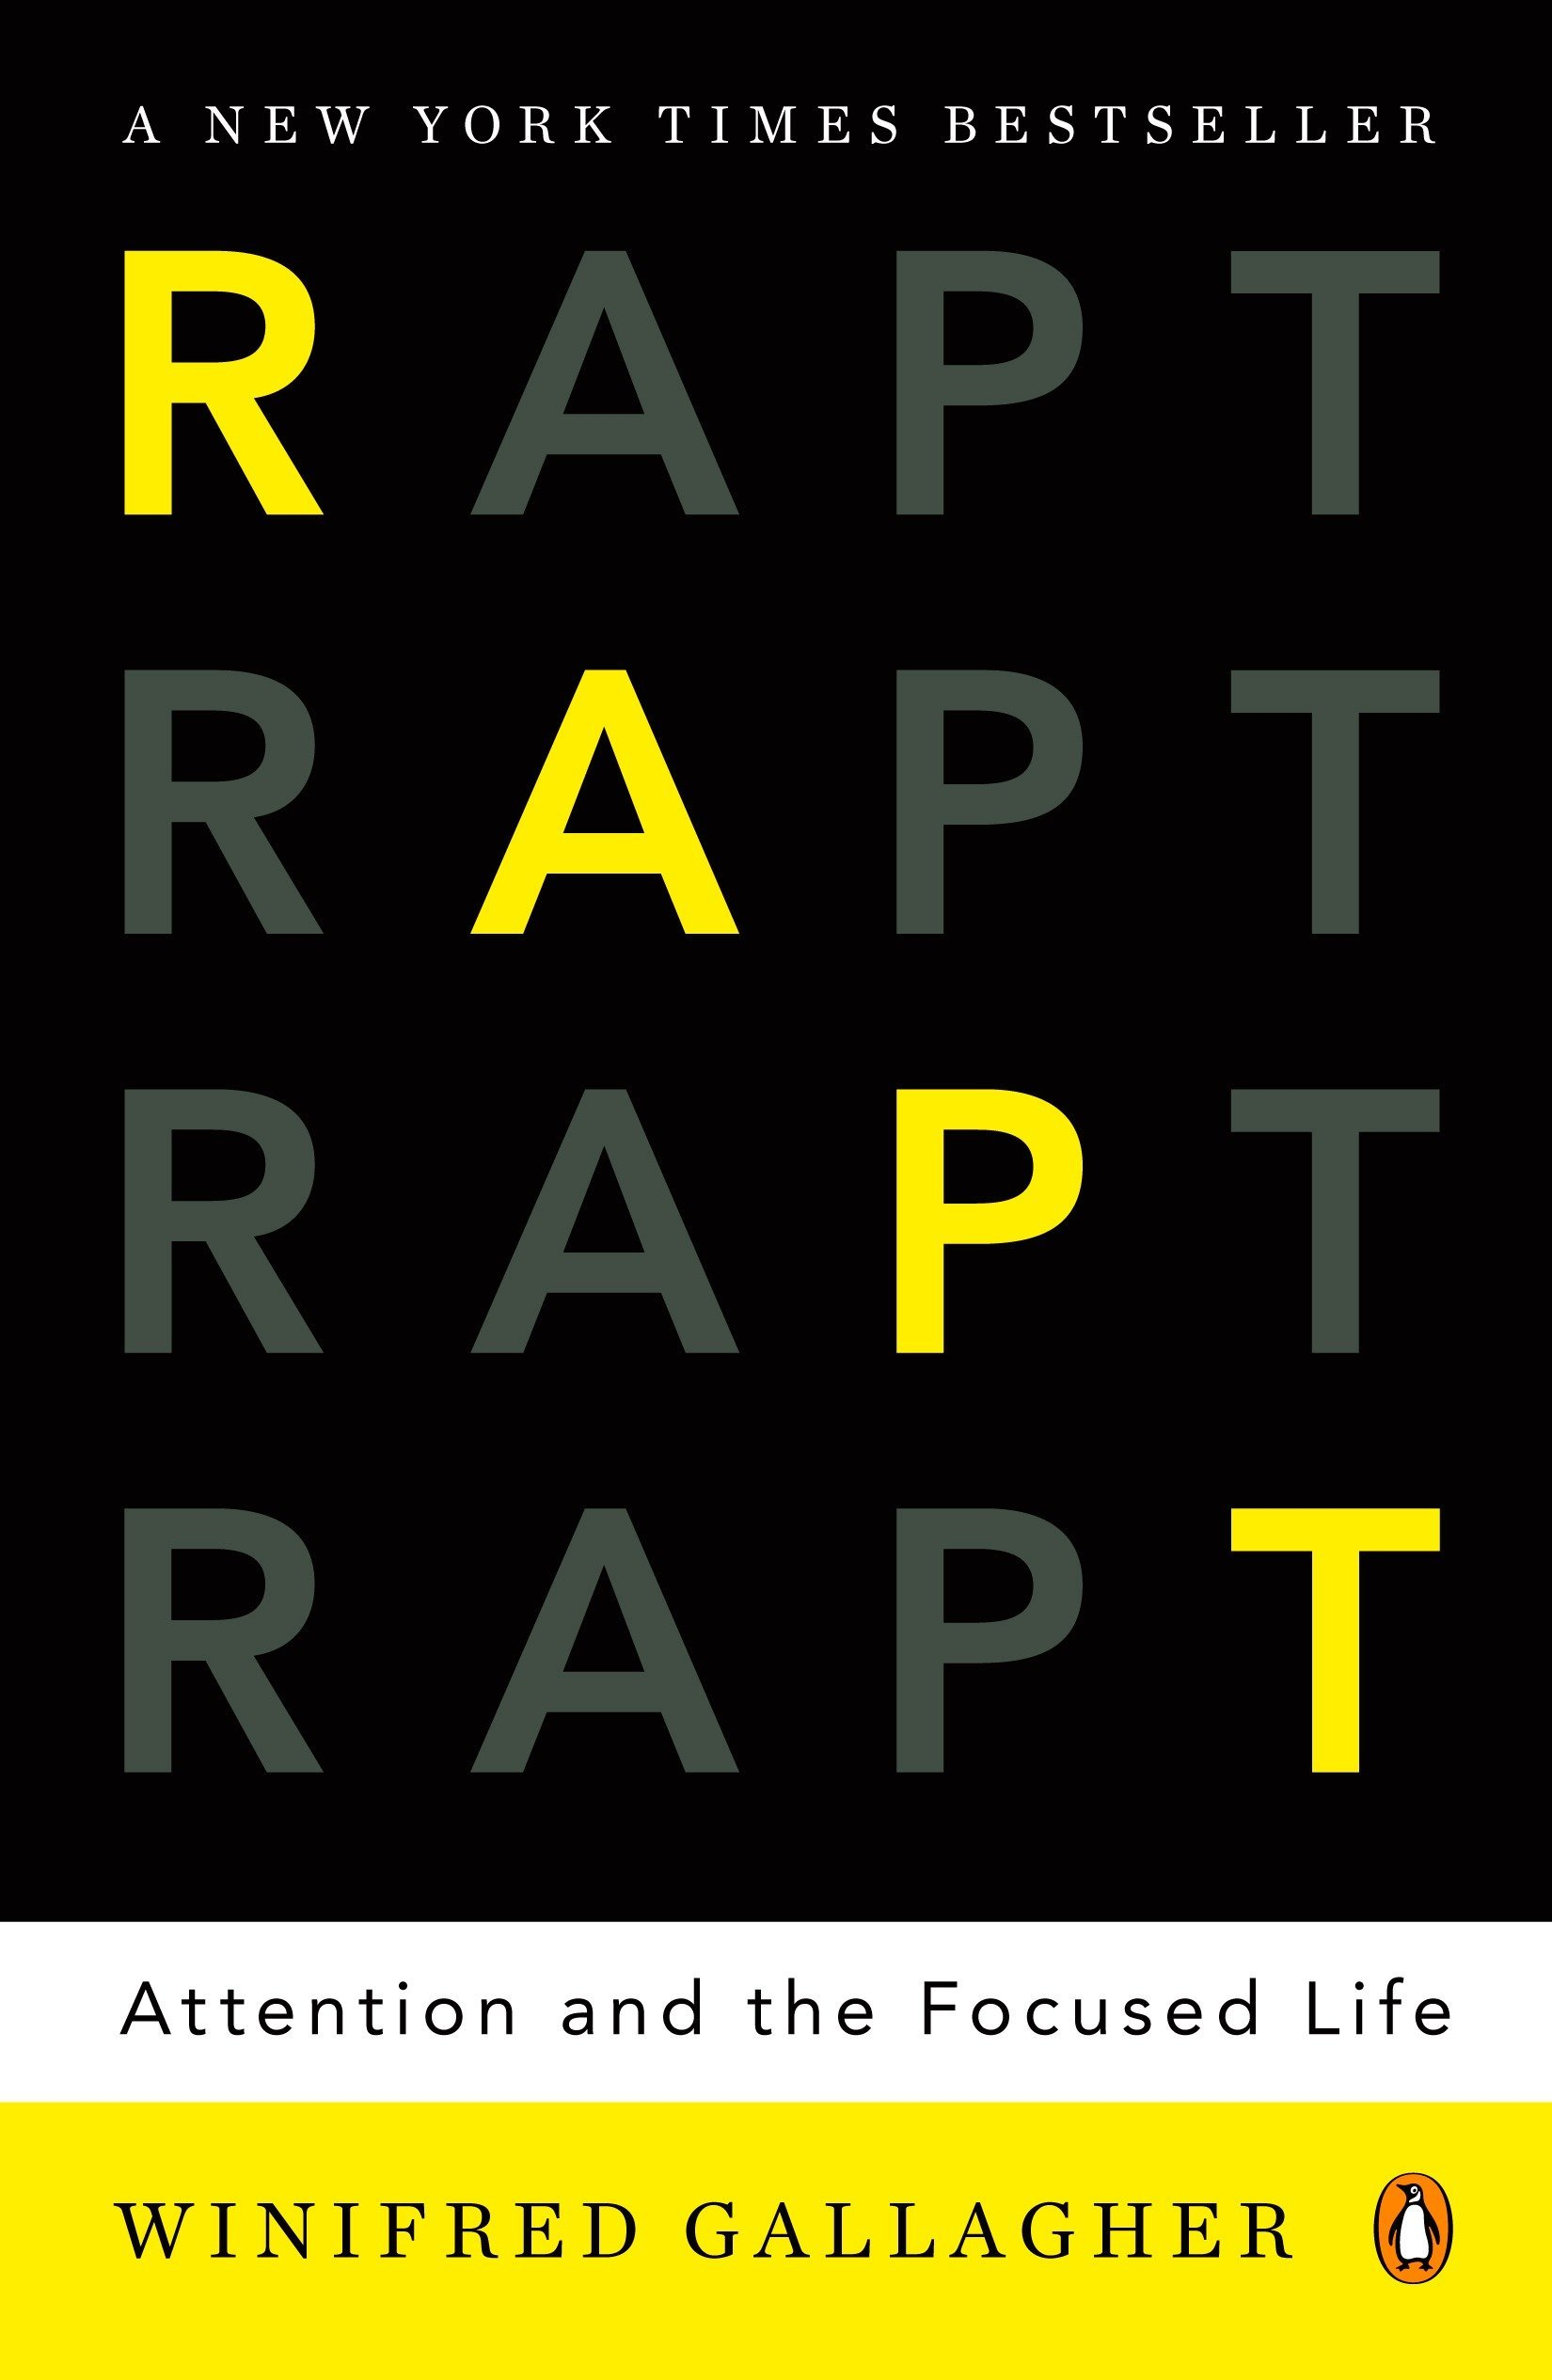 Rapt: Attention and the Focused Life: Winifred Gallagher: 9780143116905:  Amazon.com: Books